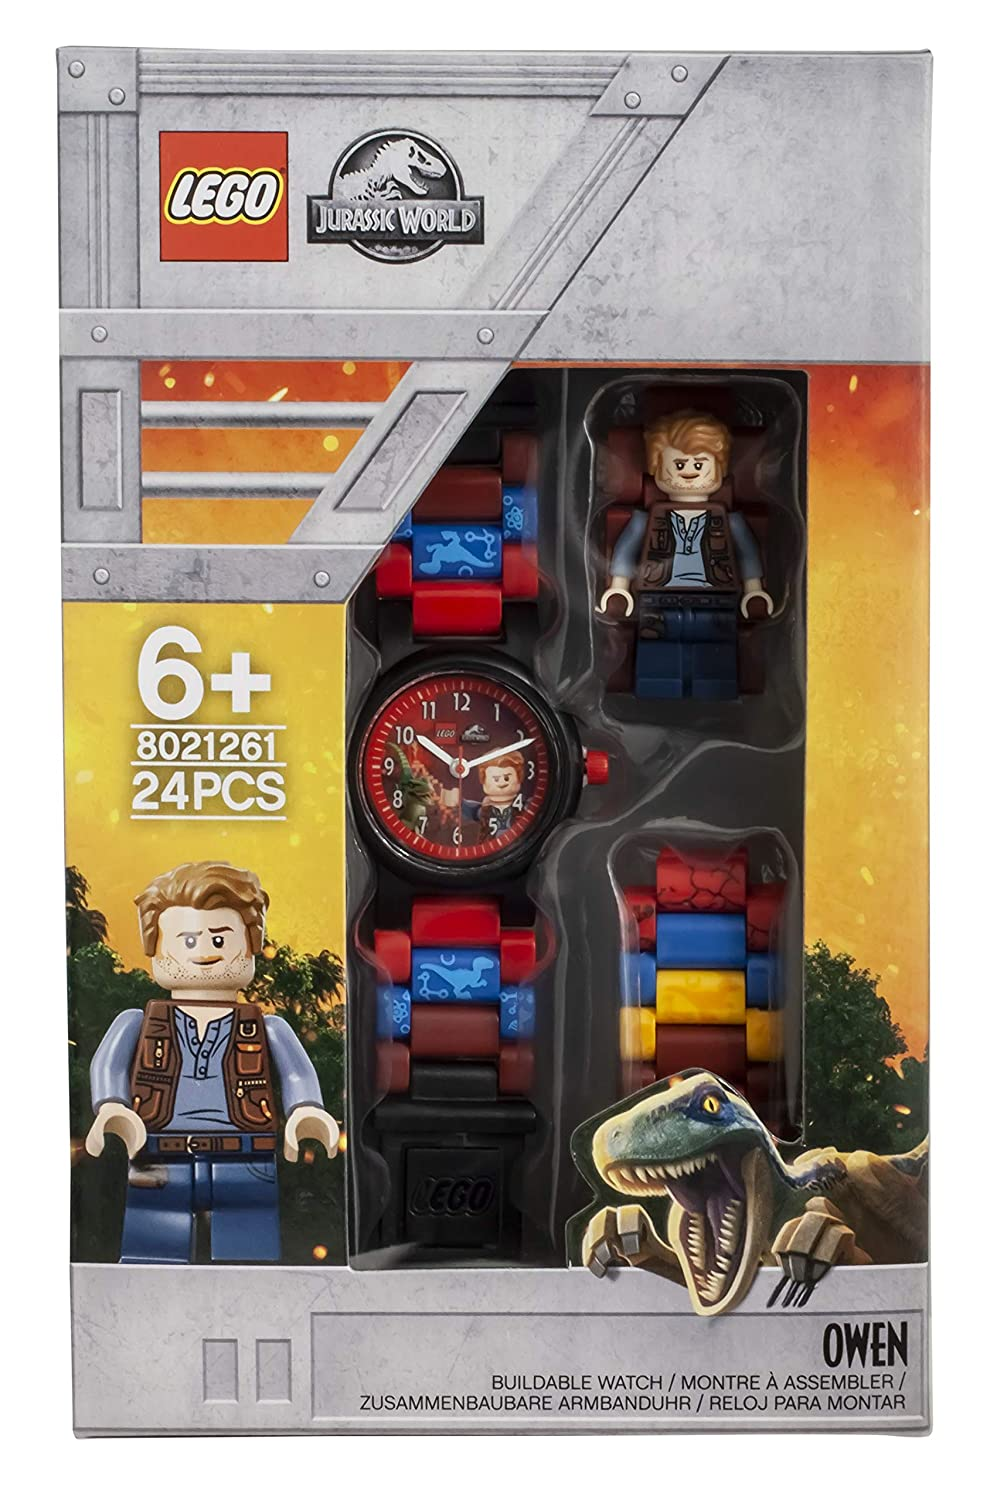 Amazon.com: LEGO Watches and Clocks Boys Jurassic World Owen Quartz Plastic Watch, Color:Red(Model: 8021261): Watches